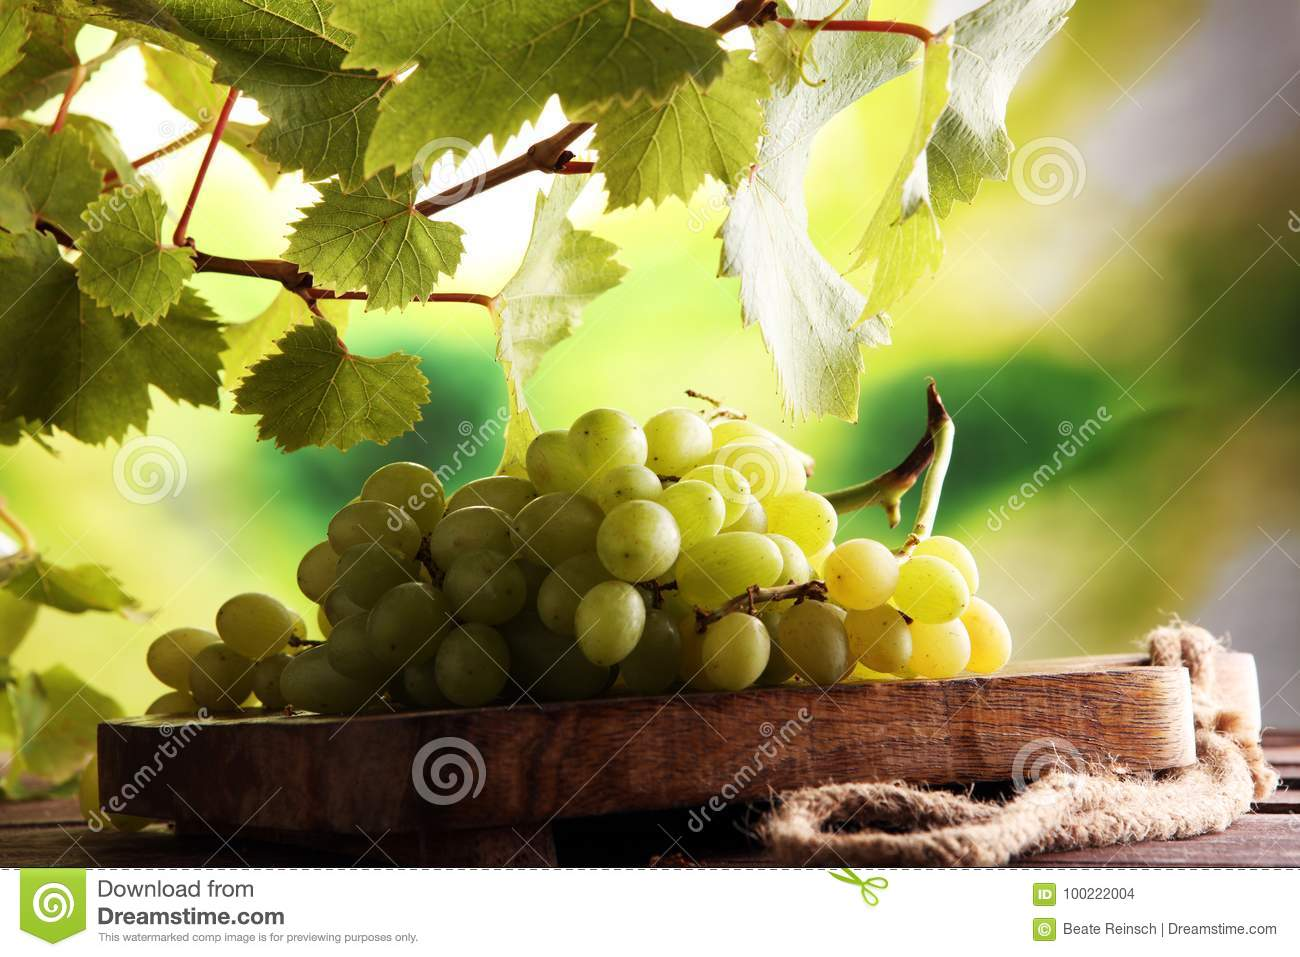 Grapes on wooden table and grape leaves . Healthy fresh fruit wine grapes